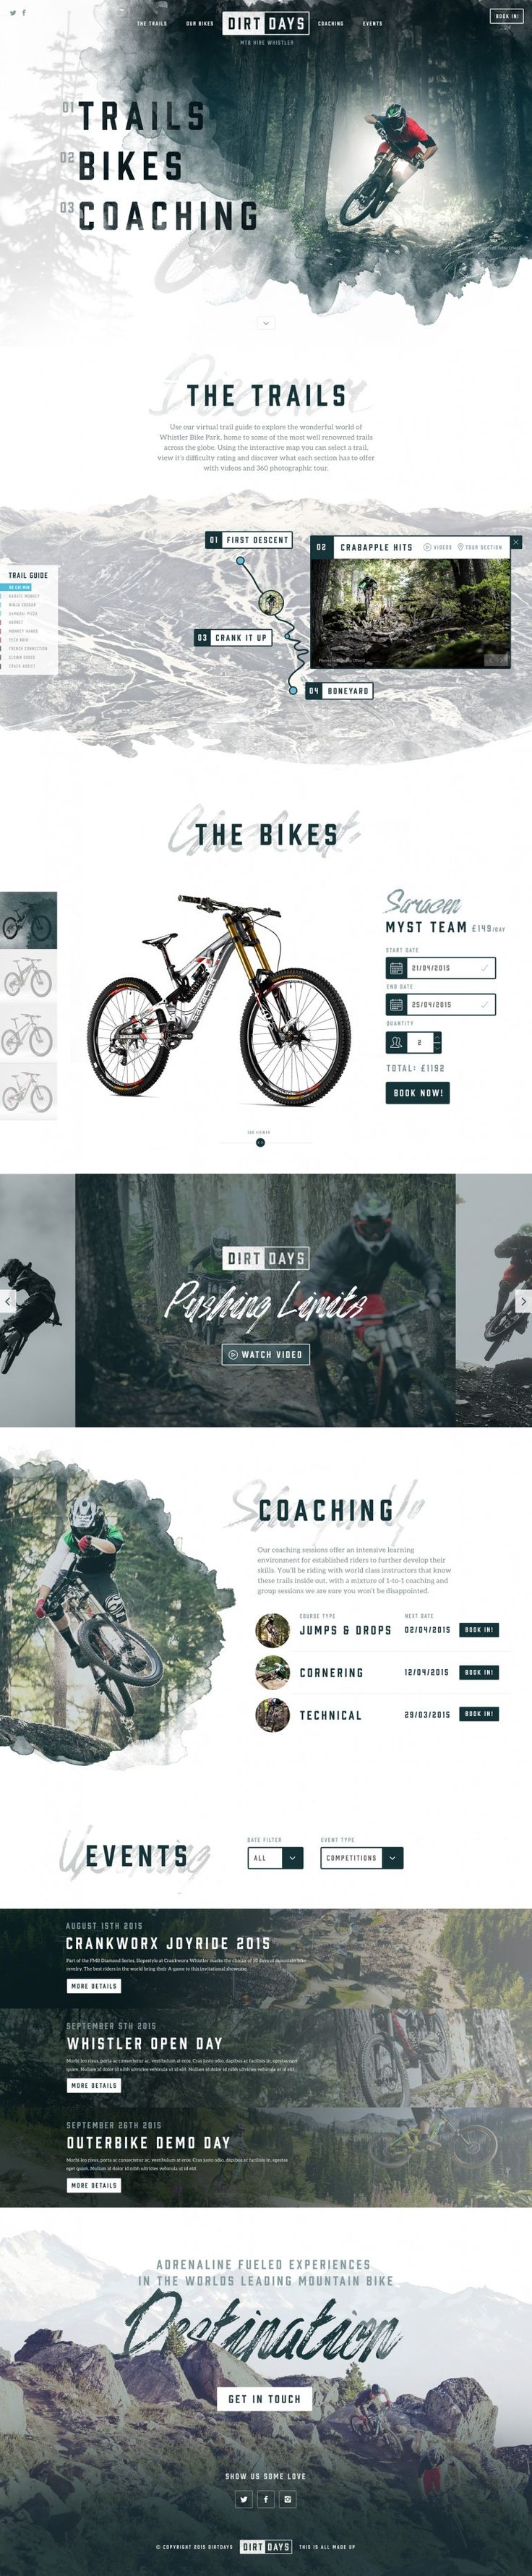 Dirtdays Website Concept - Maan Ali